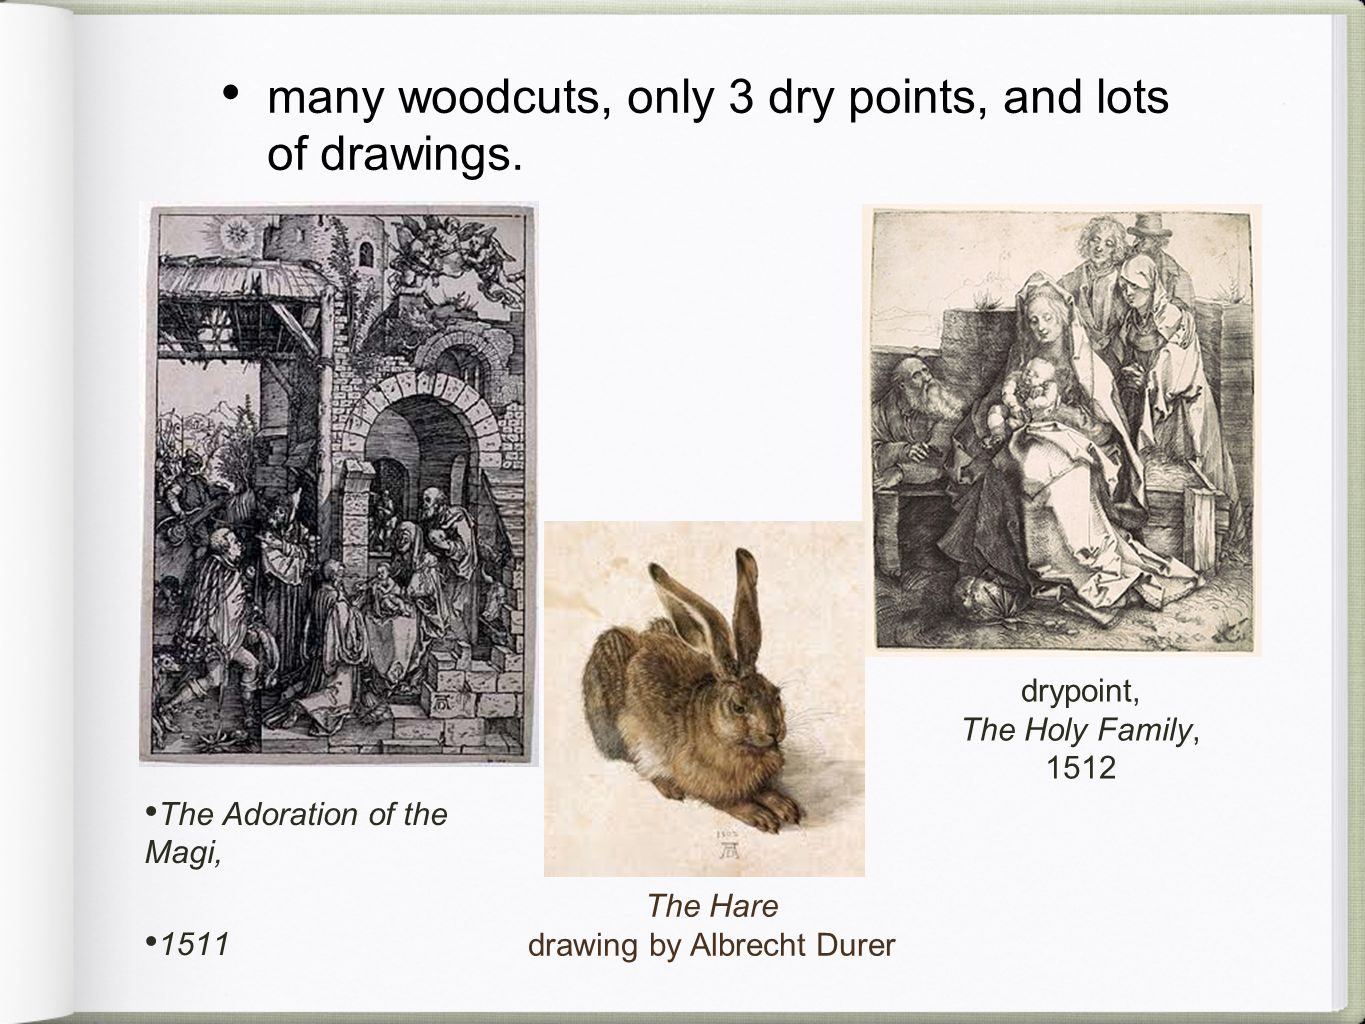 many woodcuts, only 3 dry points, and lots of drawings. a woodcut titled, The Adoration of the Magi, 1511 The Hare drawing by Albrecht Durer drypoint,